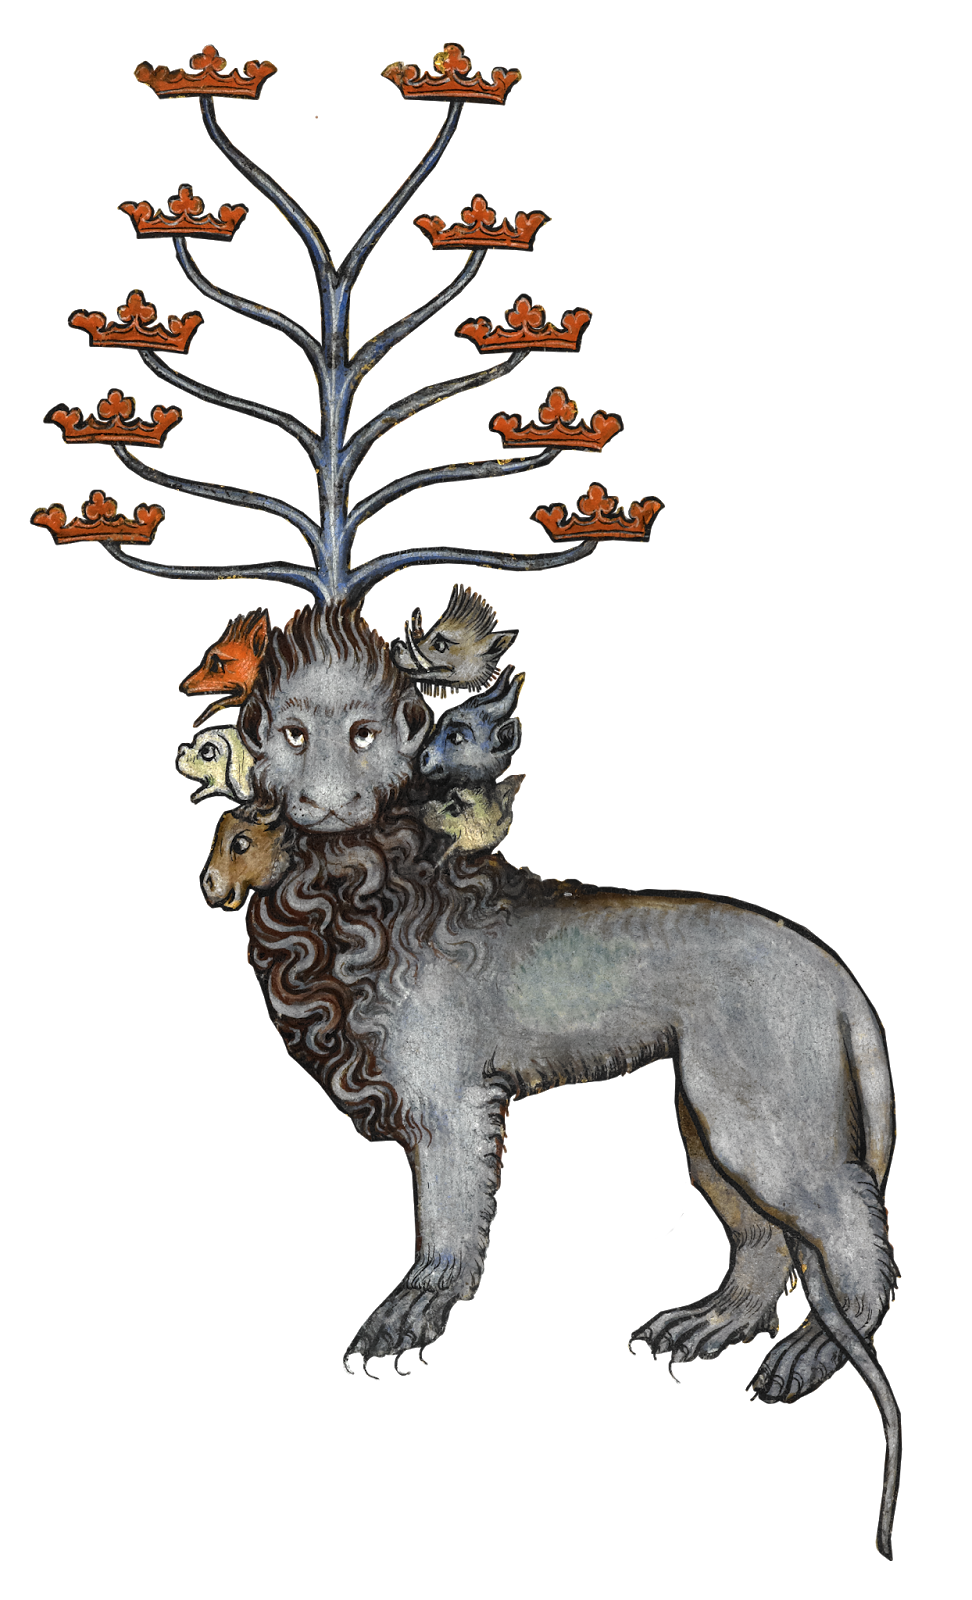 Crown of castile cat clipart small picture png royalty free stock An end days vision: six heads and ten horns with multiple crowns ... png royalty free stock